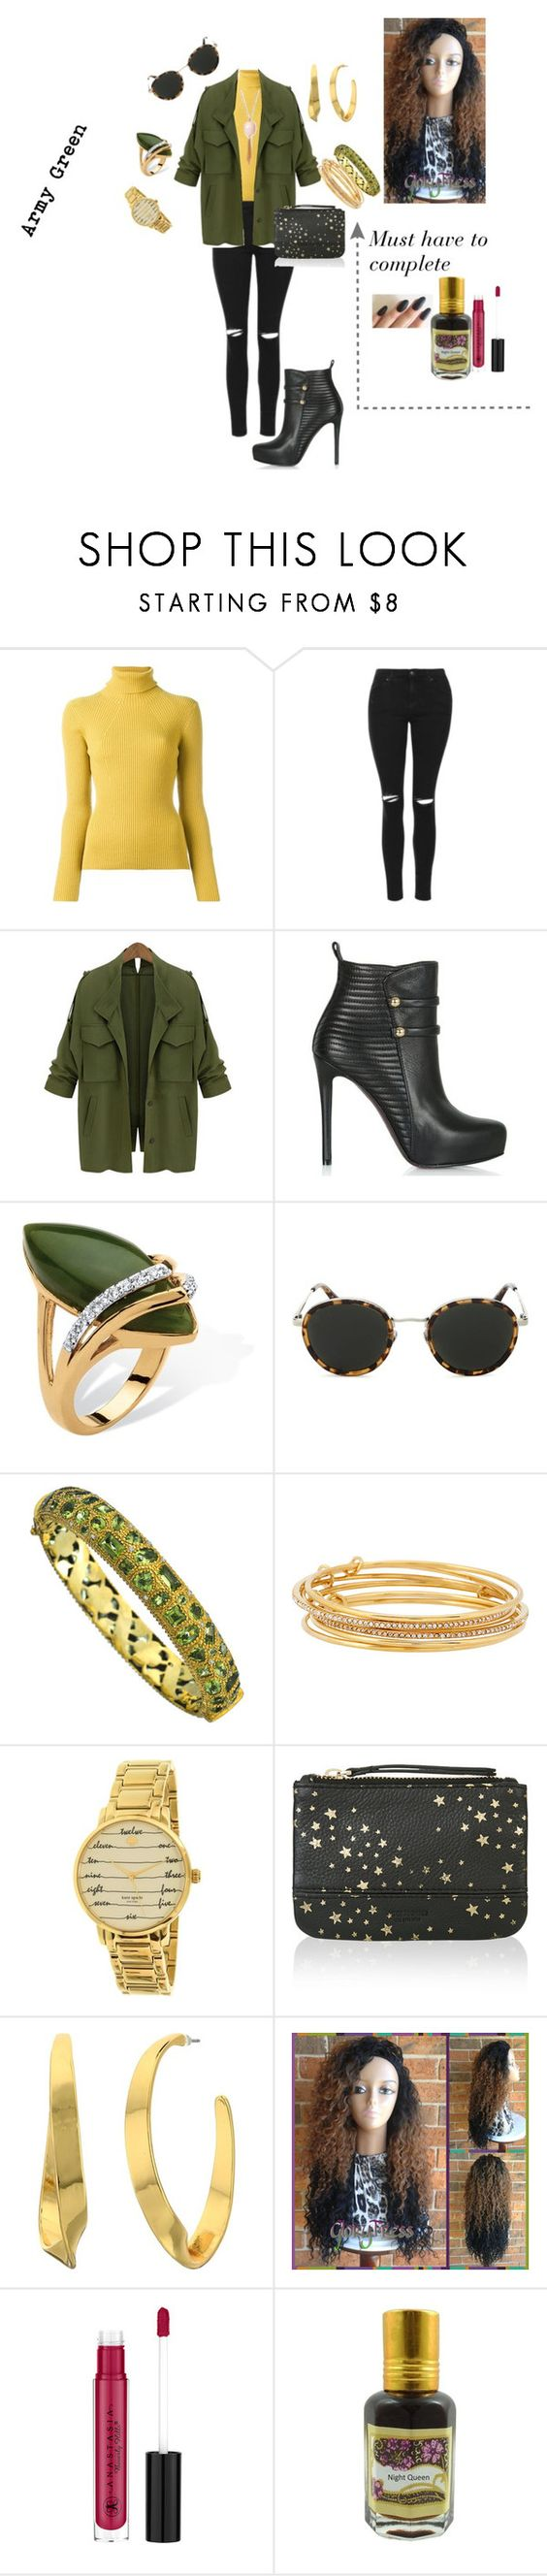 """""""Army Green Jacket"""" by constance-dangerfield on Polyvore featuring 3.1 Phillip Lim, Topshop, Palm Beach Jewelry, Taylor Morris, Divya Diamond, Kate Spade, Accessorize, Lauren Ralph Lauren and Anastasia Beverly Hills"""